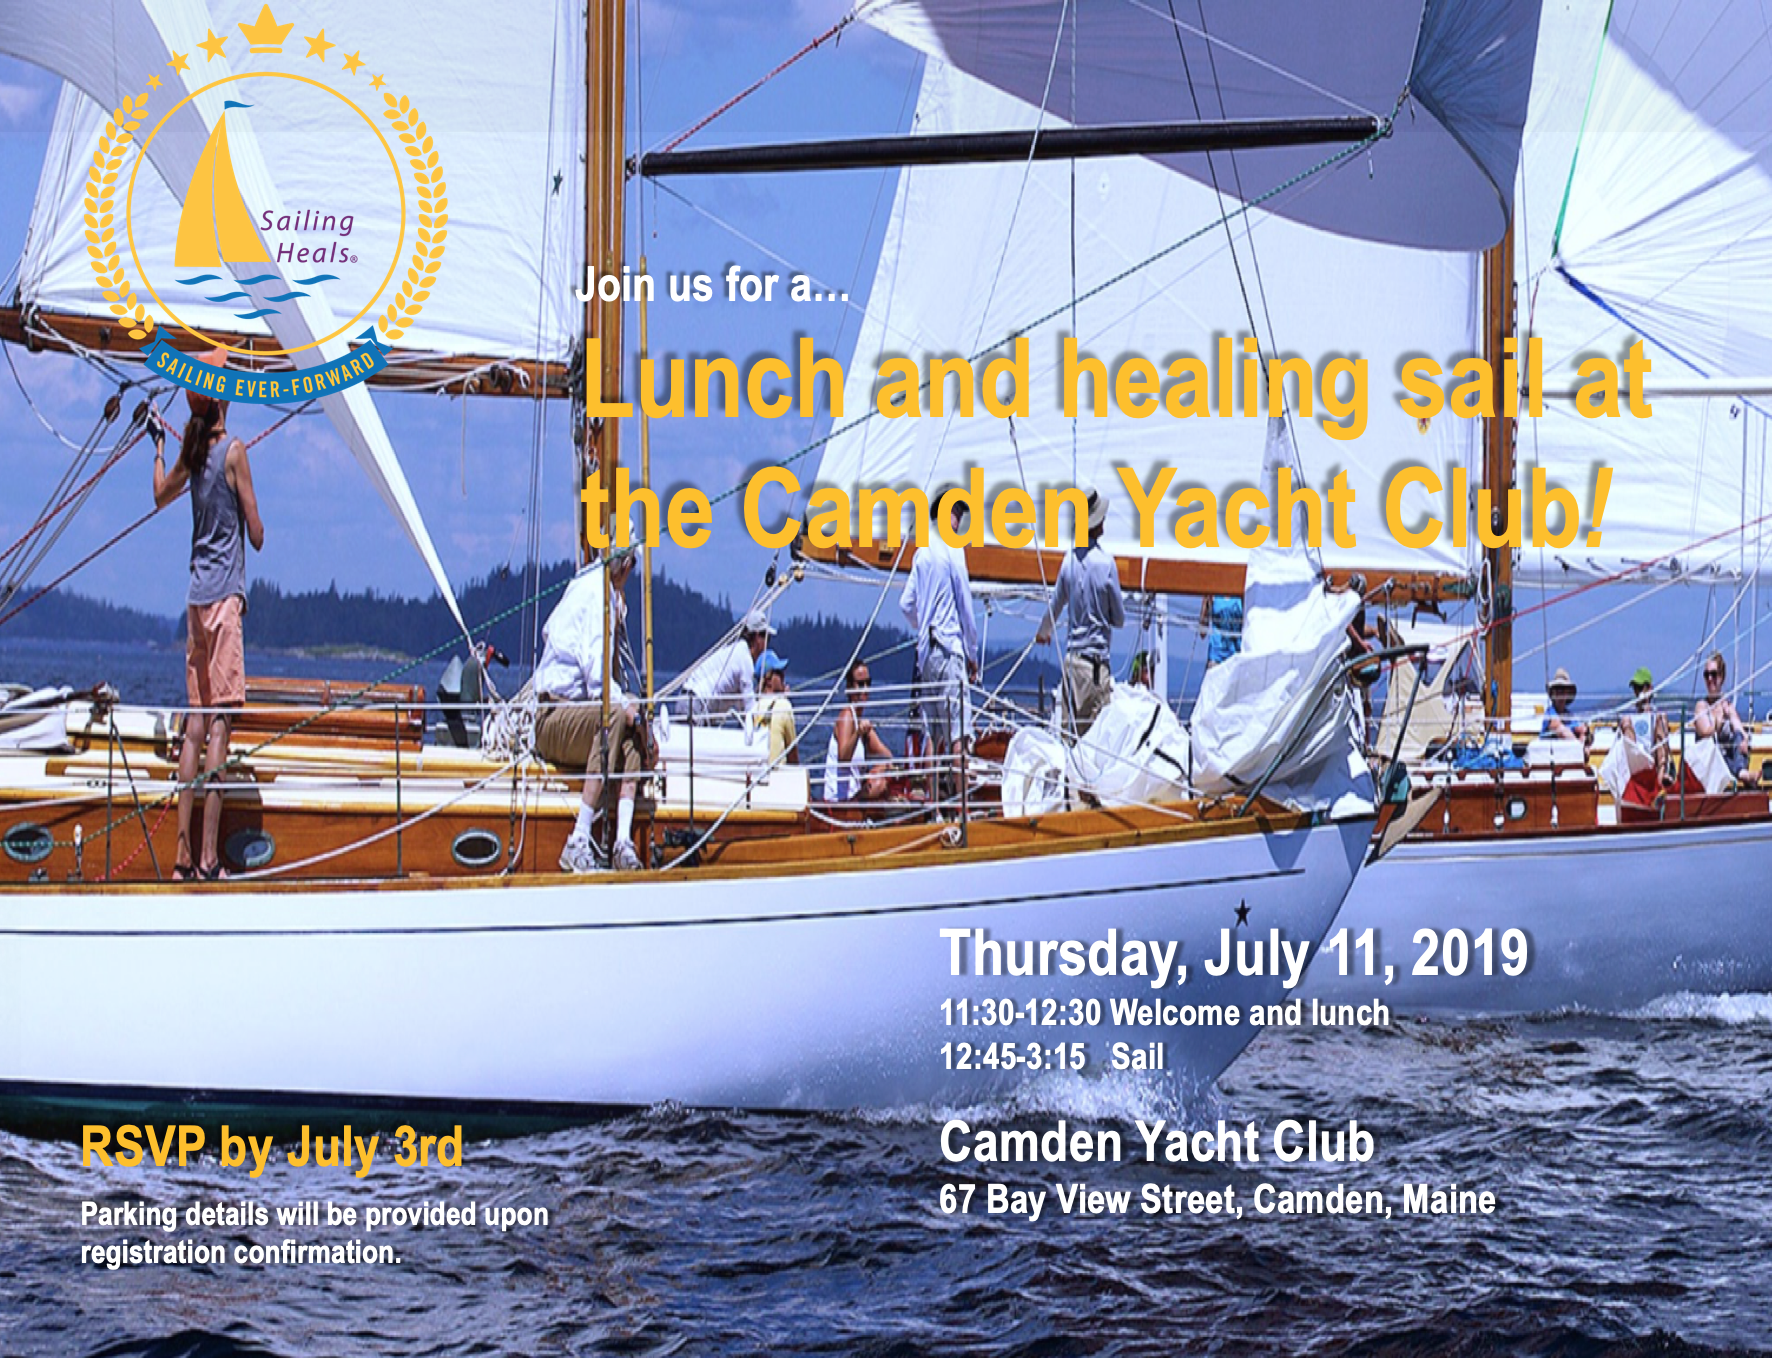 7.11.19 Camden Yacht Club Lunch and healing sail